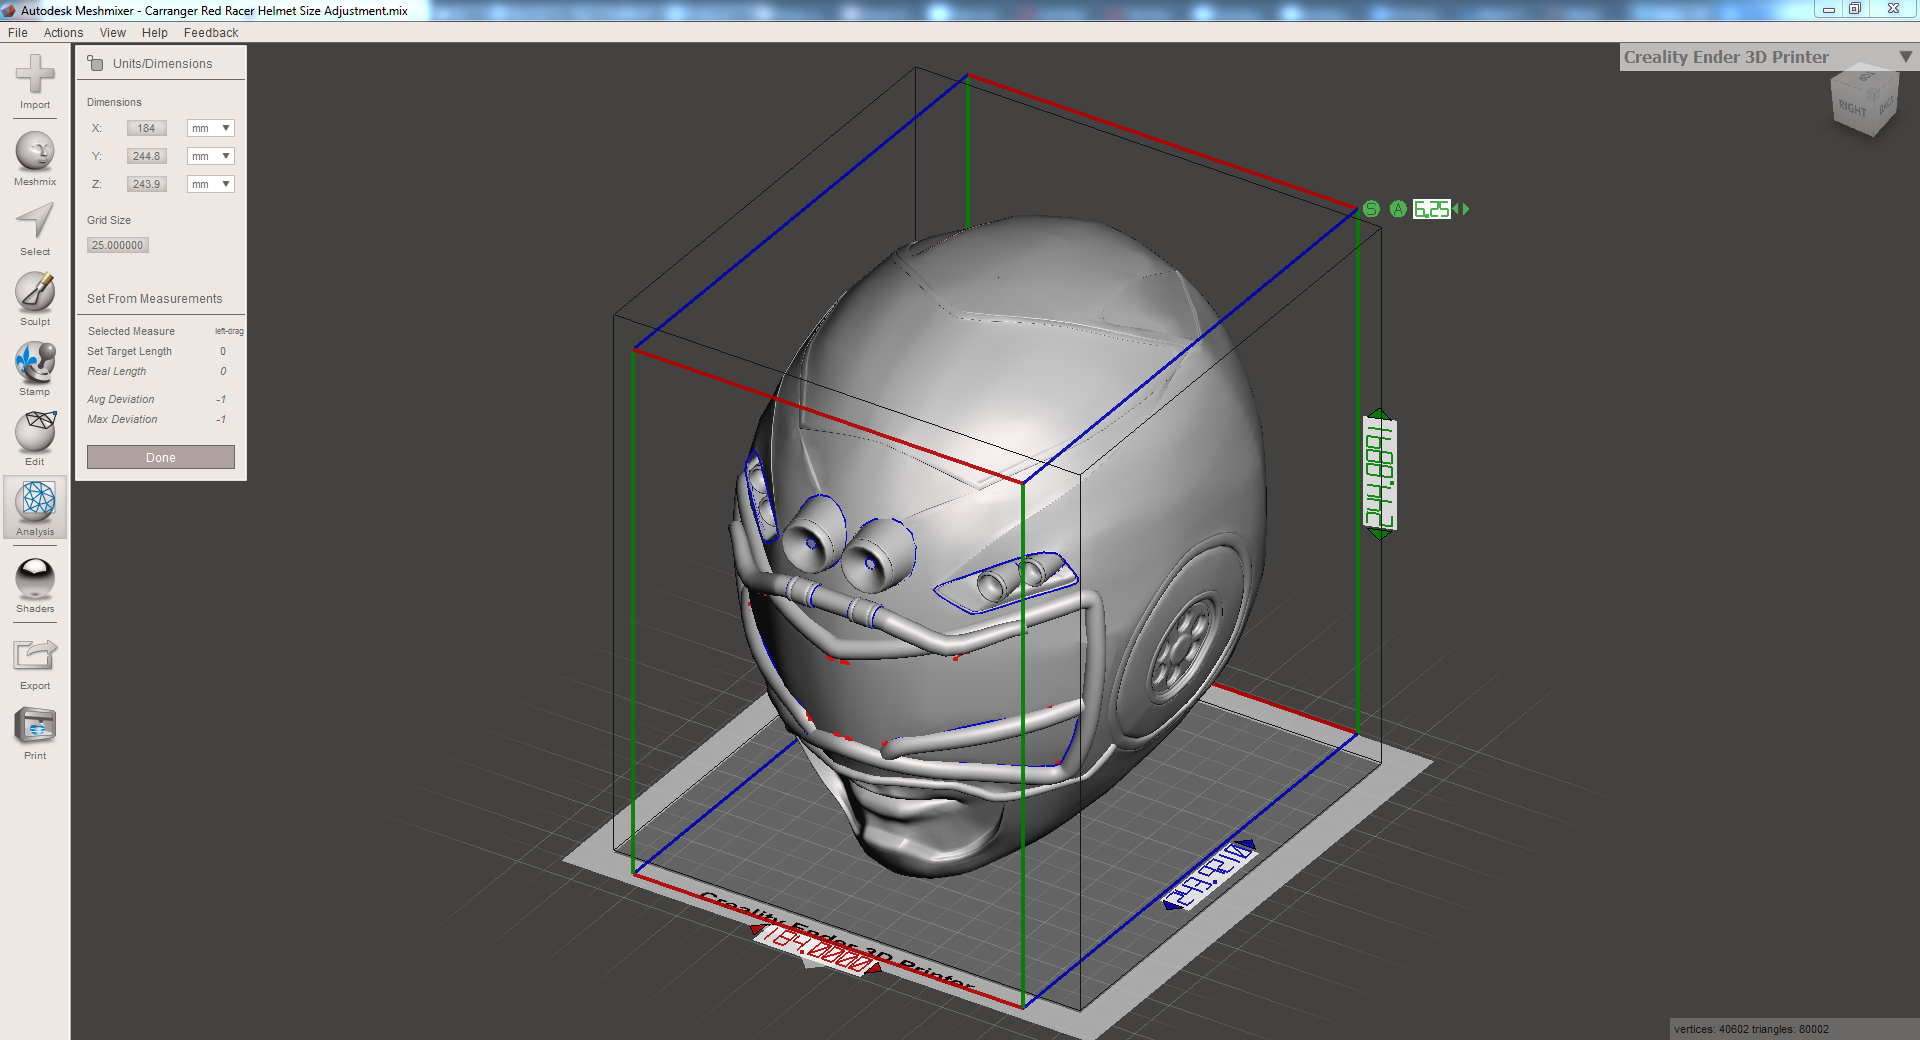 2019-01-18 09_16_30-Autodesk Meshmixer - Carranger Red Racer Helmet Size Adjustment.mix.png